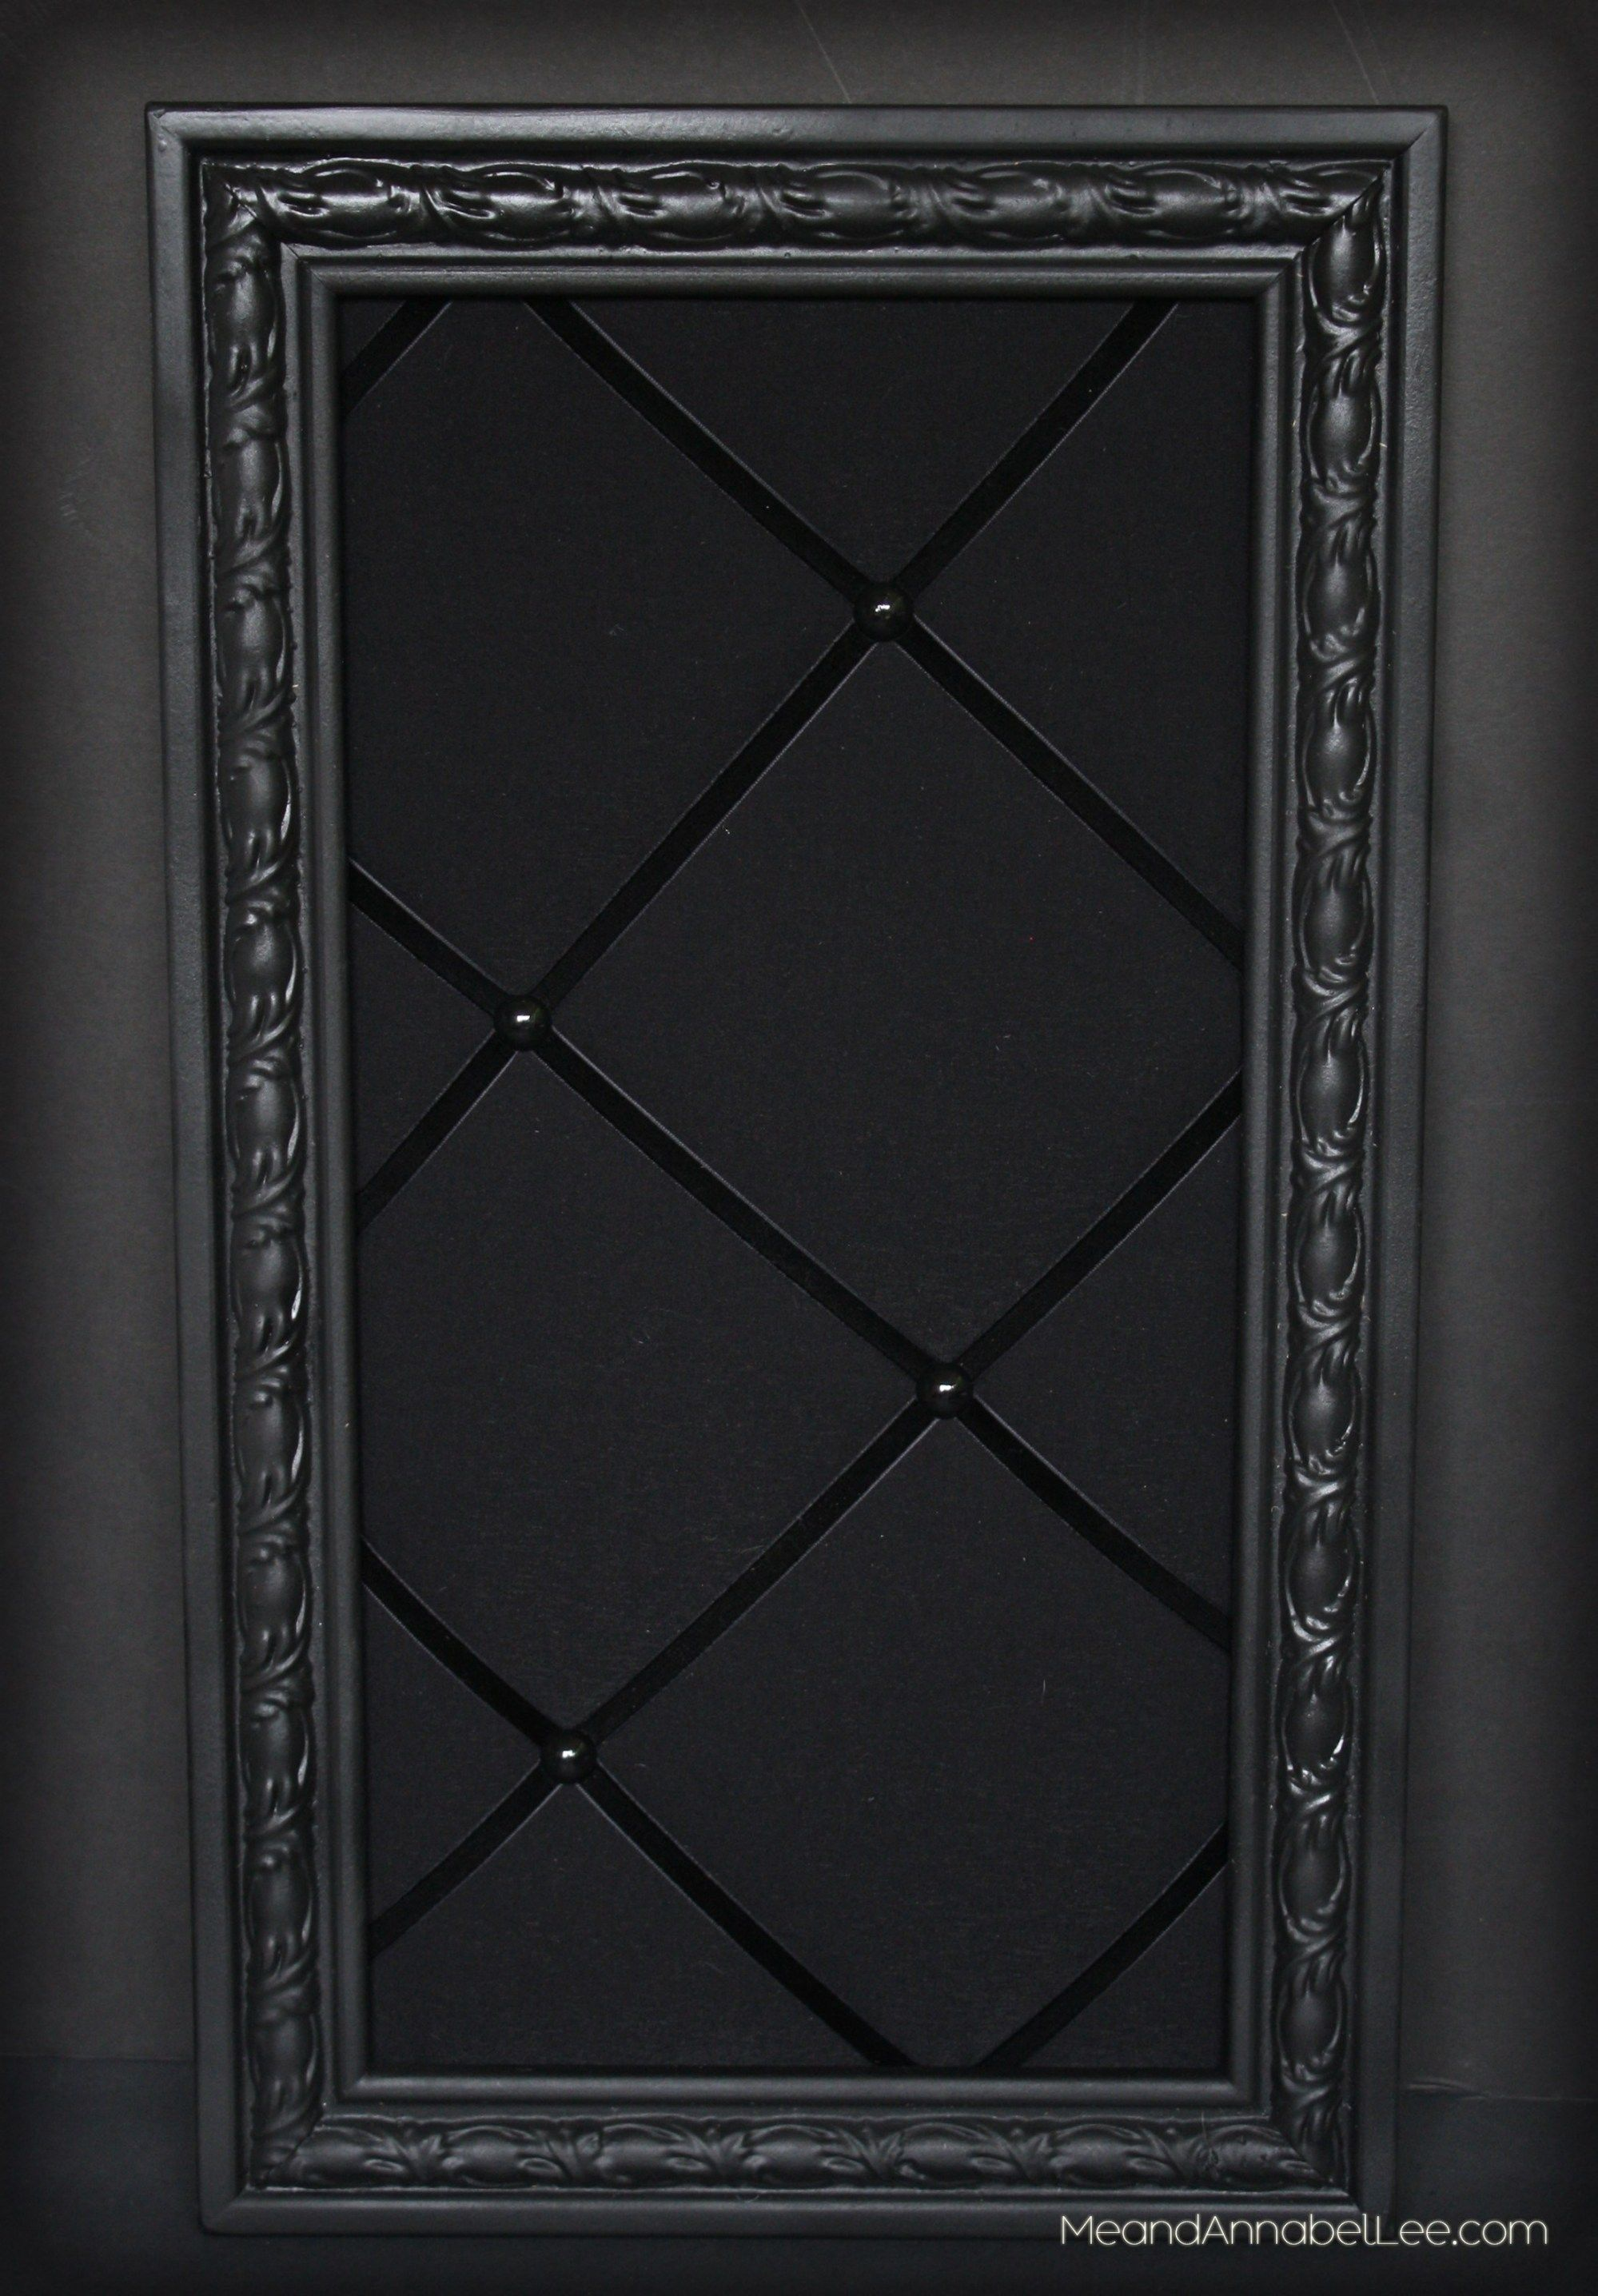 DIY Upholstered Gothic Memo Board - Black Victorian Pin Board - Goth Home Decor | Me and Annabel Lee - Gothic Blog